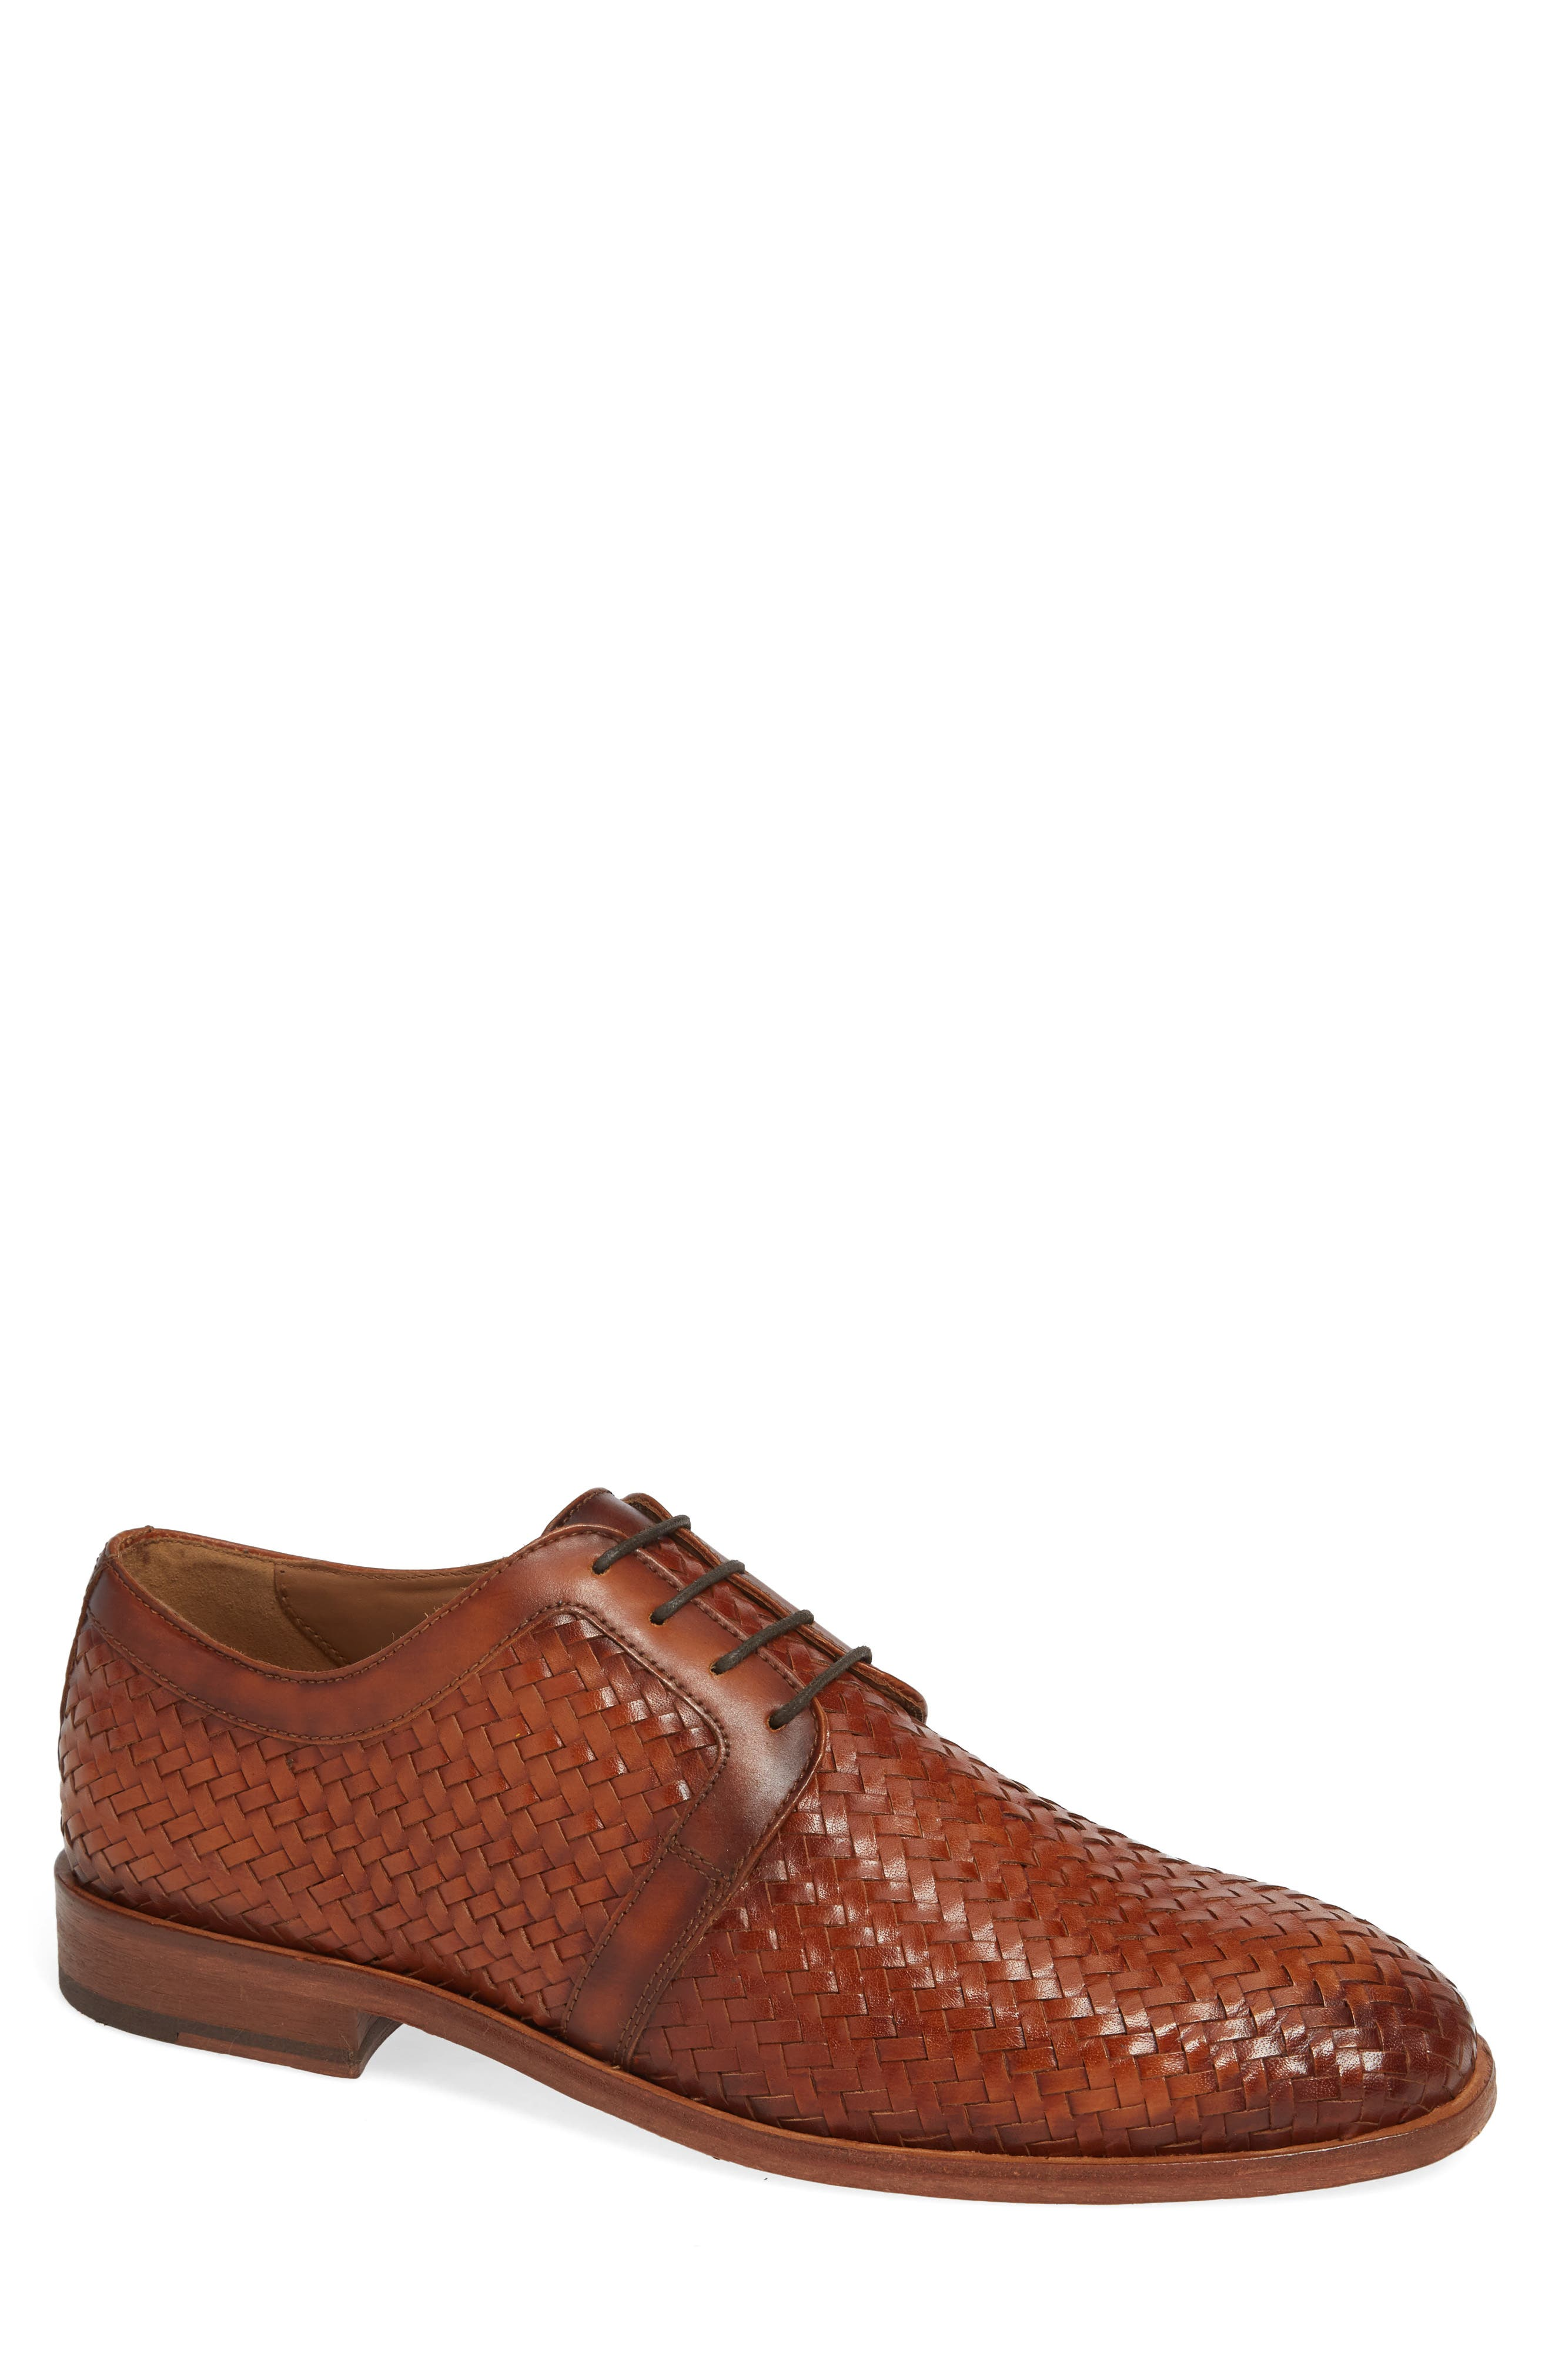 Bolinas True Woven Derby,                             Main thumbnail 1, color,                             COGNAC LEATHER